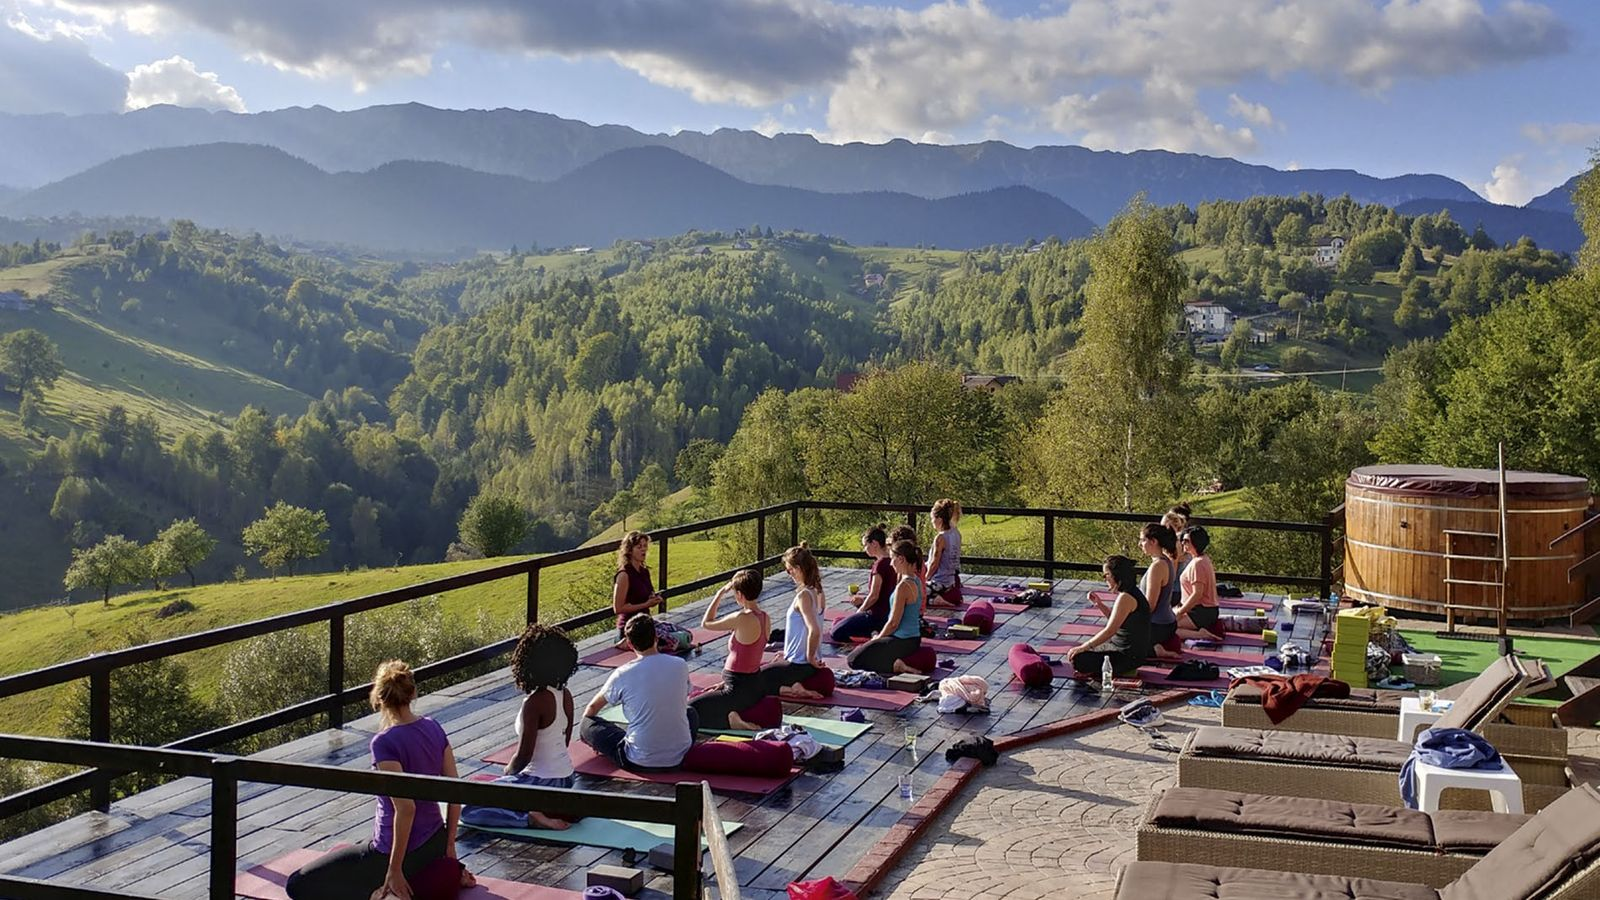 People practicing yoga outside on a terrace overlooking the mountains at Akasha Wellness Retreat